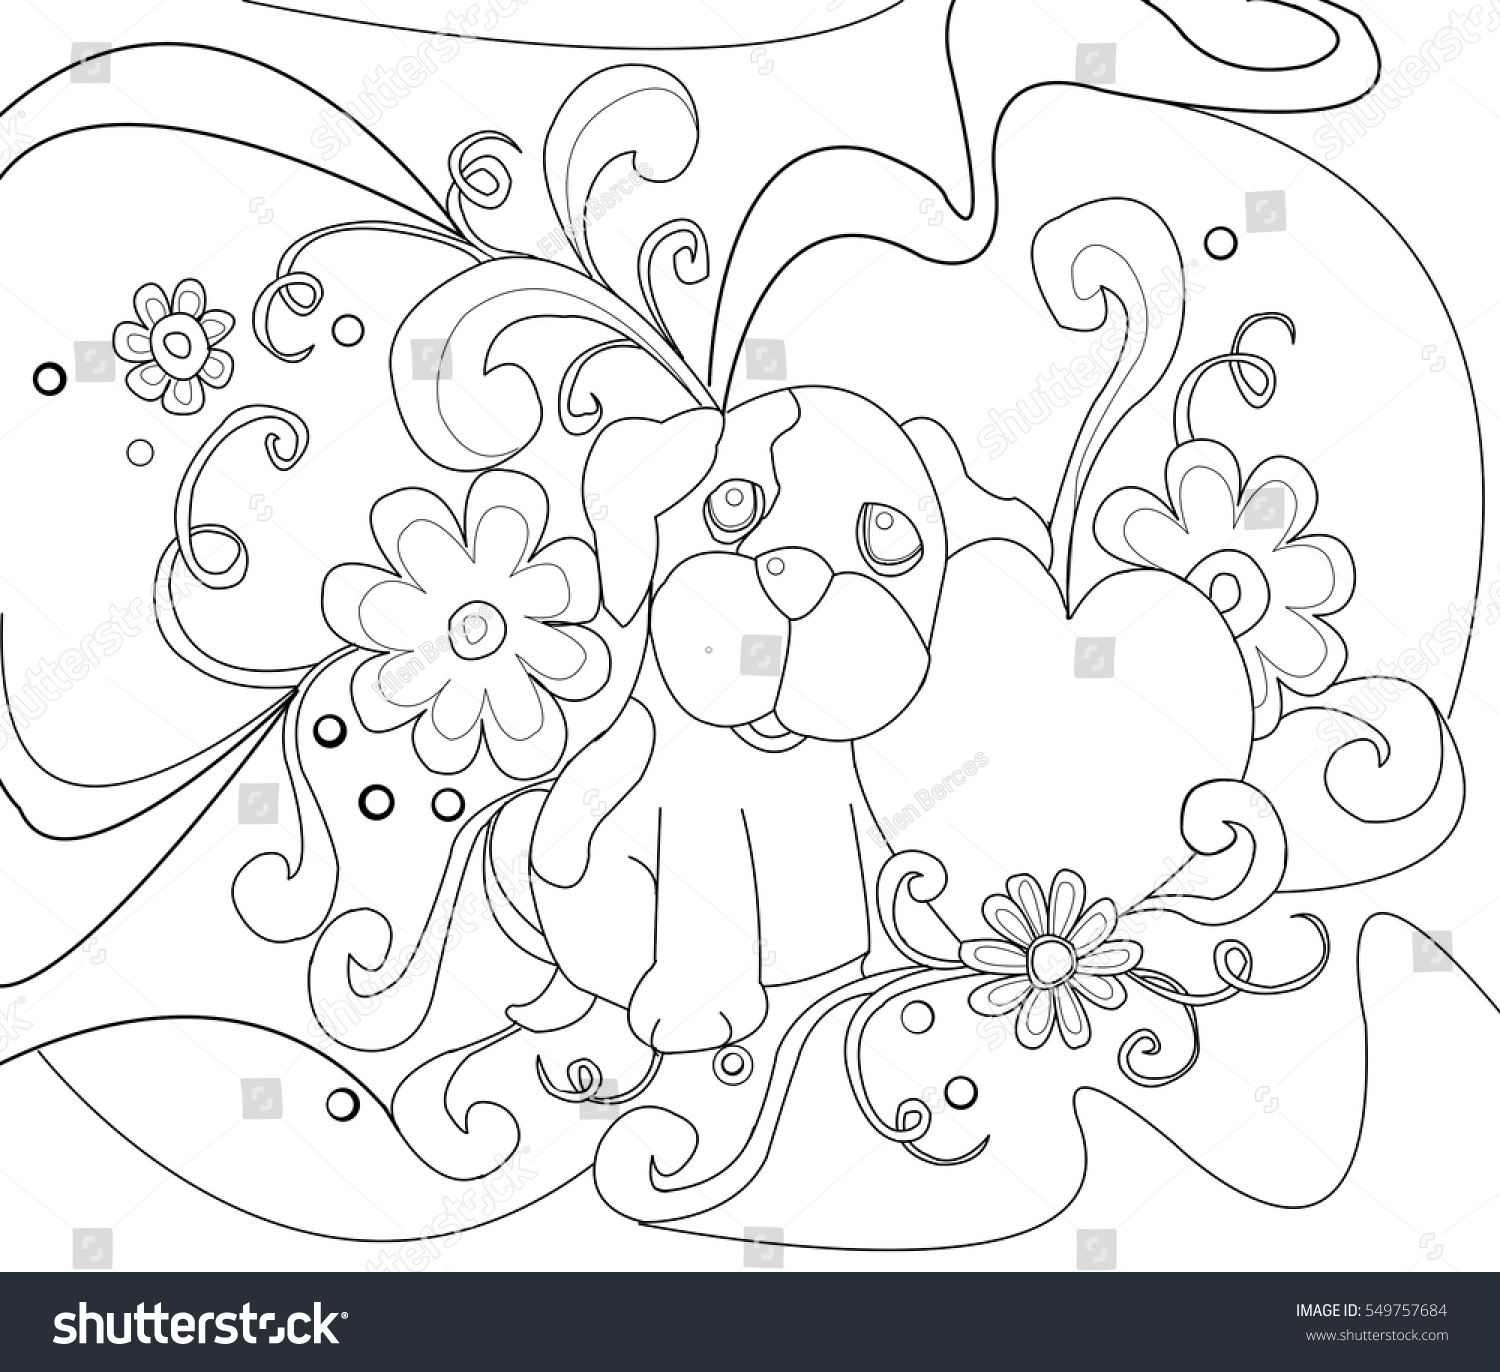 Dog Heart Flowers Line Drawing Coloring Stock Vector (Royalty Free ...